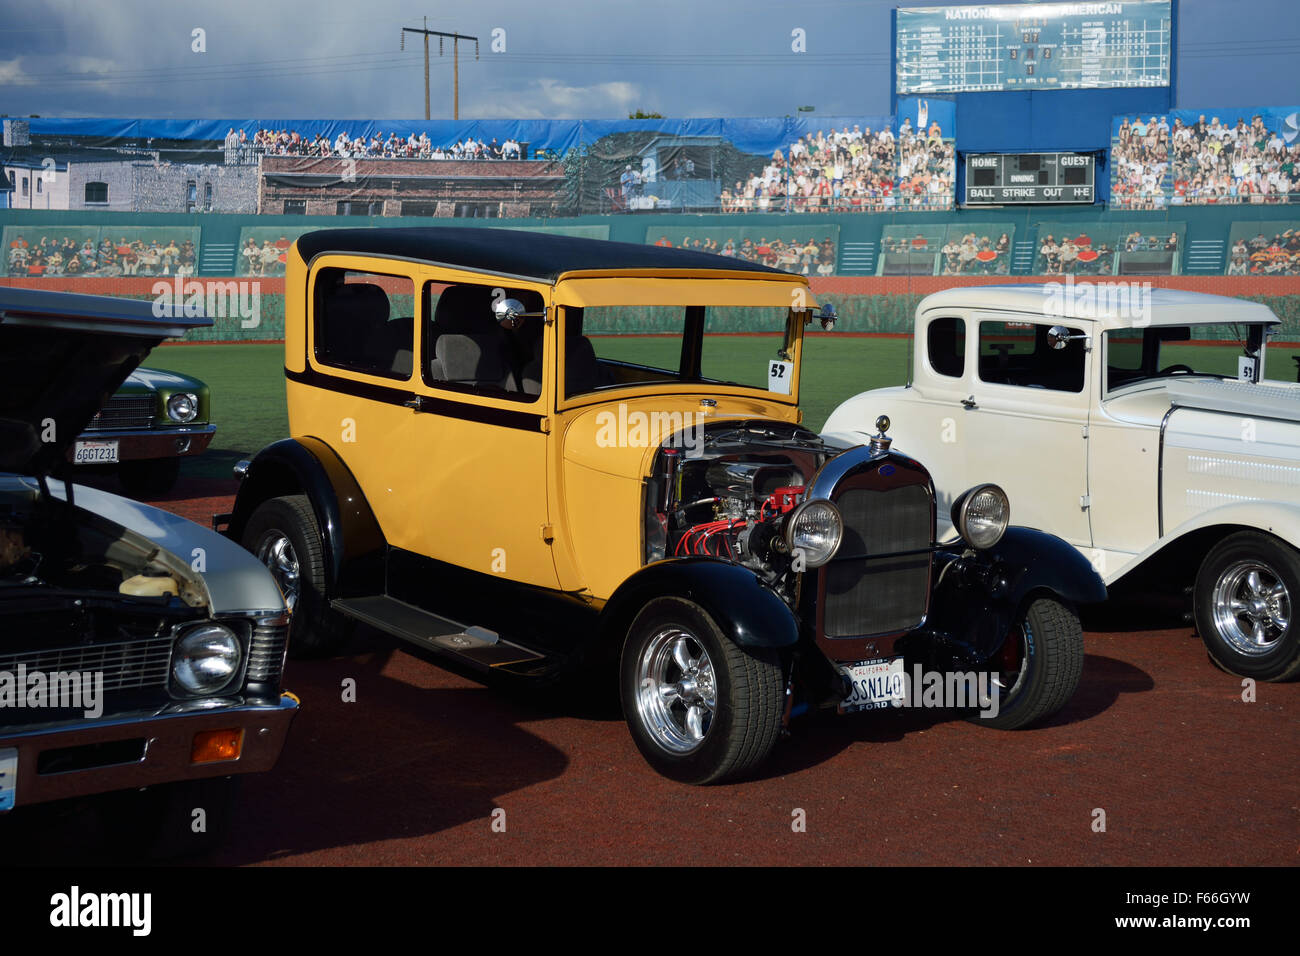 A classic car is an older automobile; the exact definition varies ...